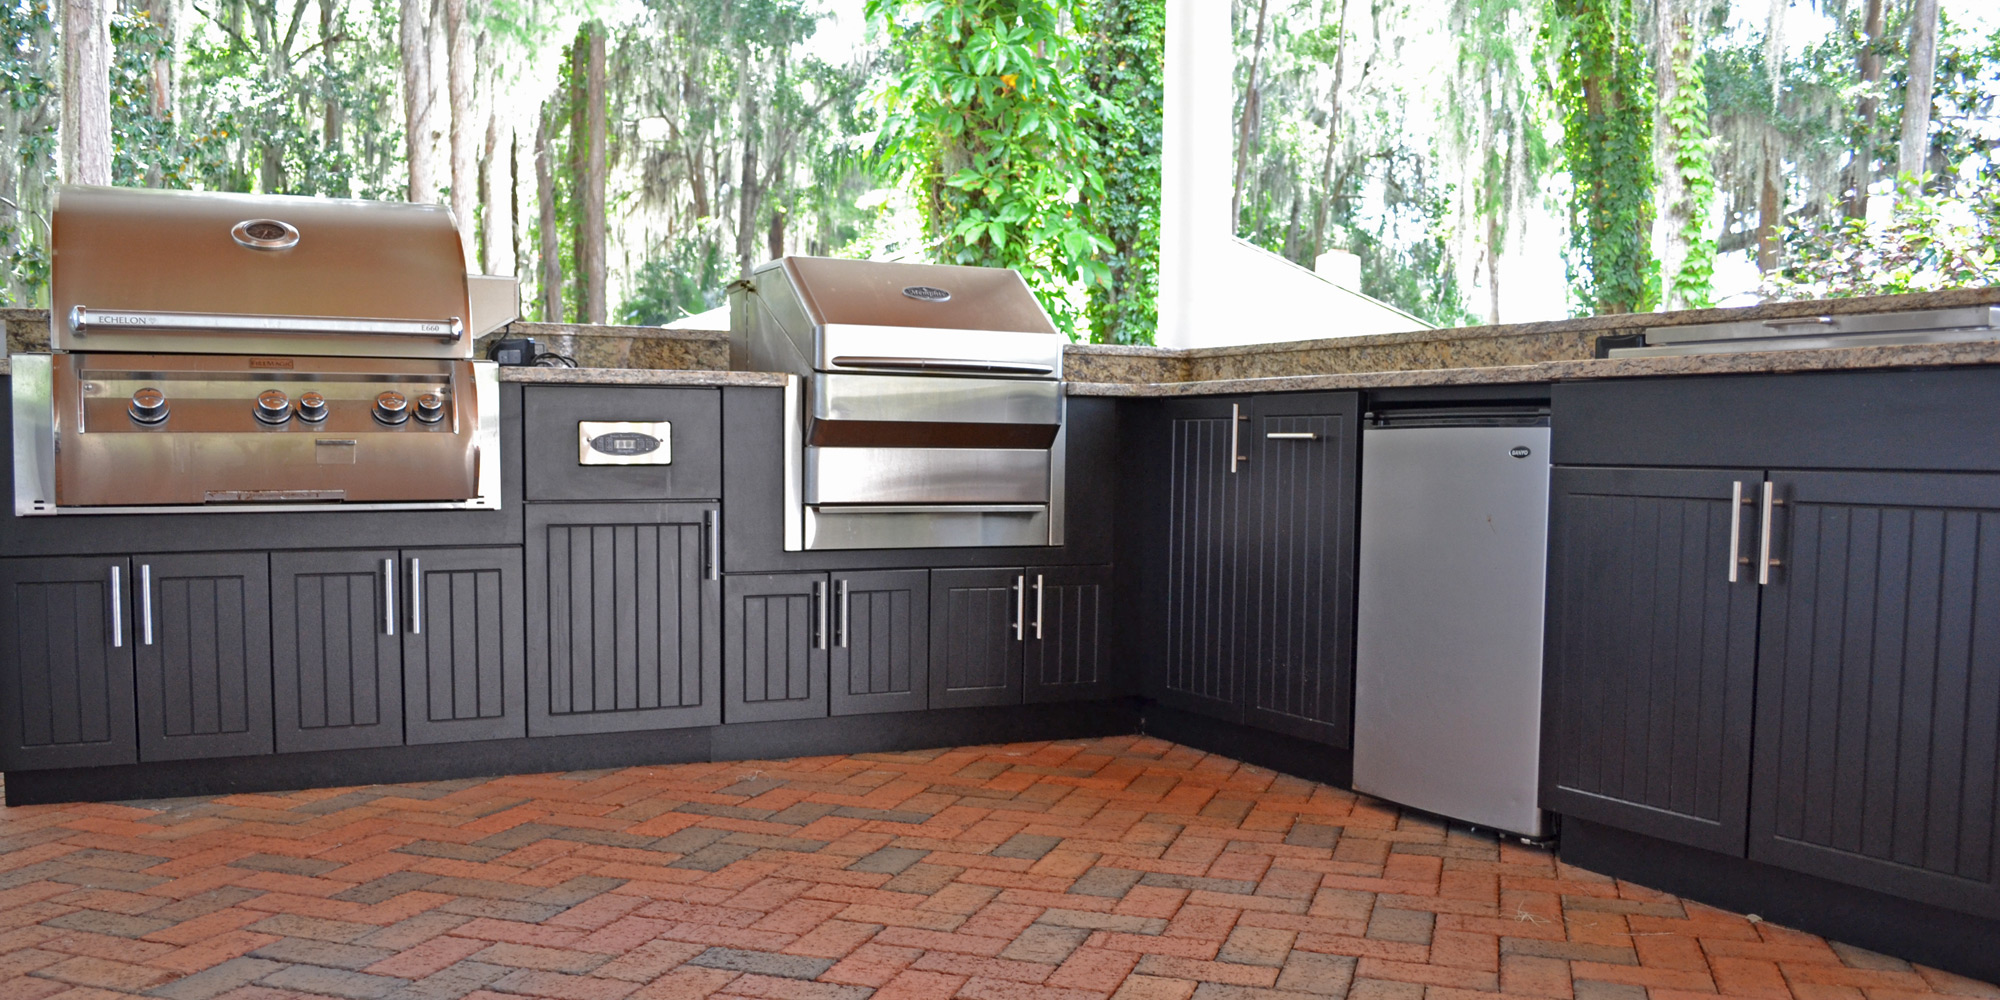 Premium-Polymer-Outdoor-Kitchen-Black_2000x1000_003.jpg